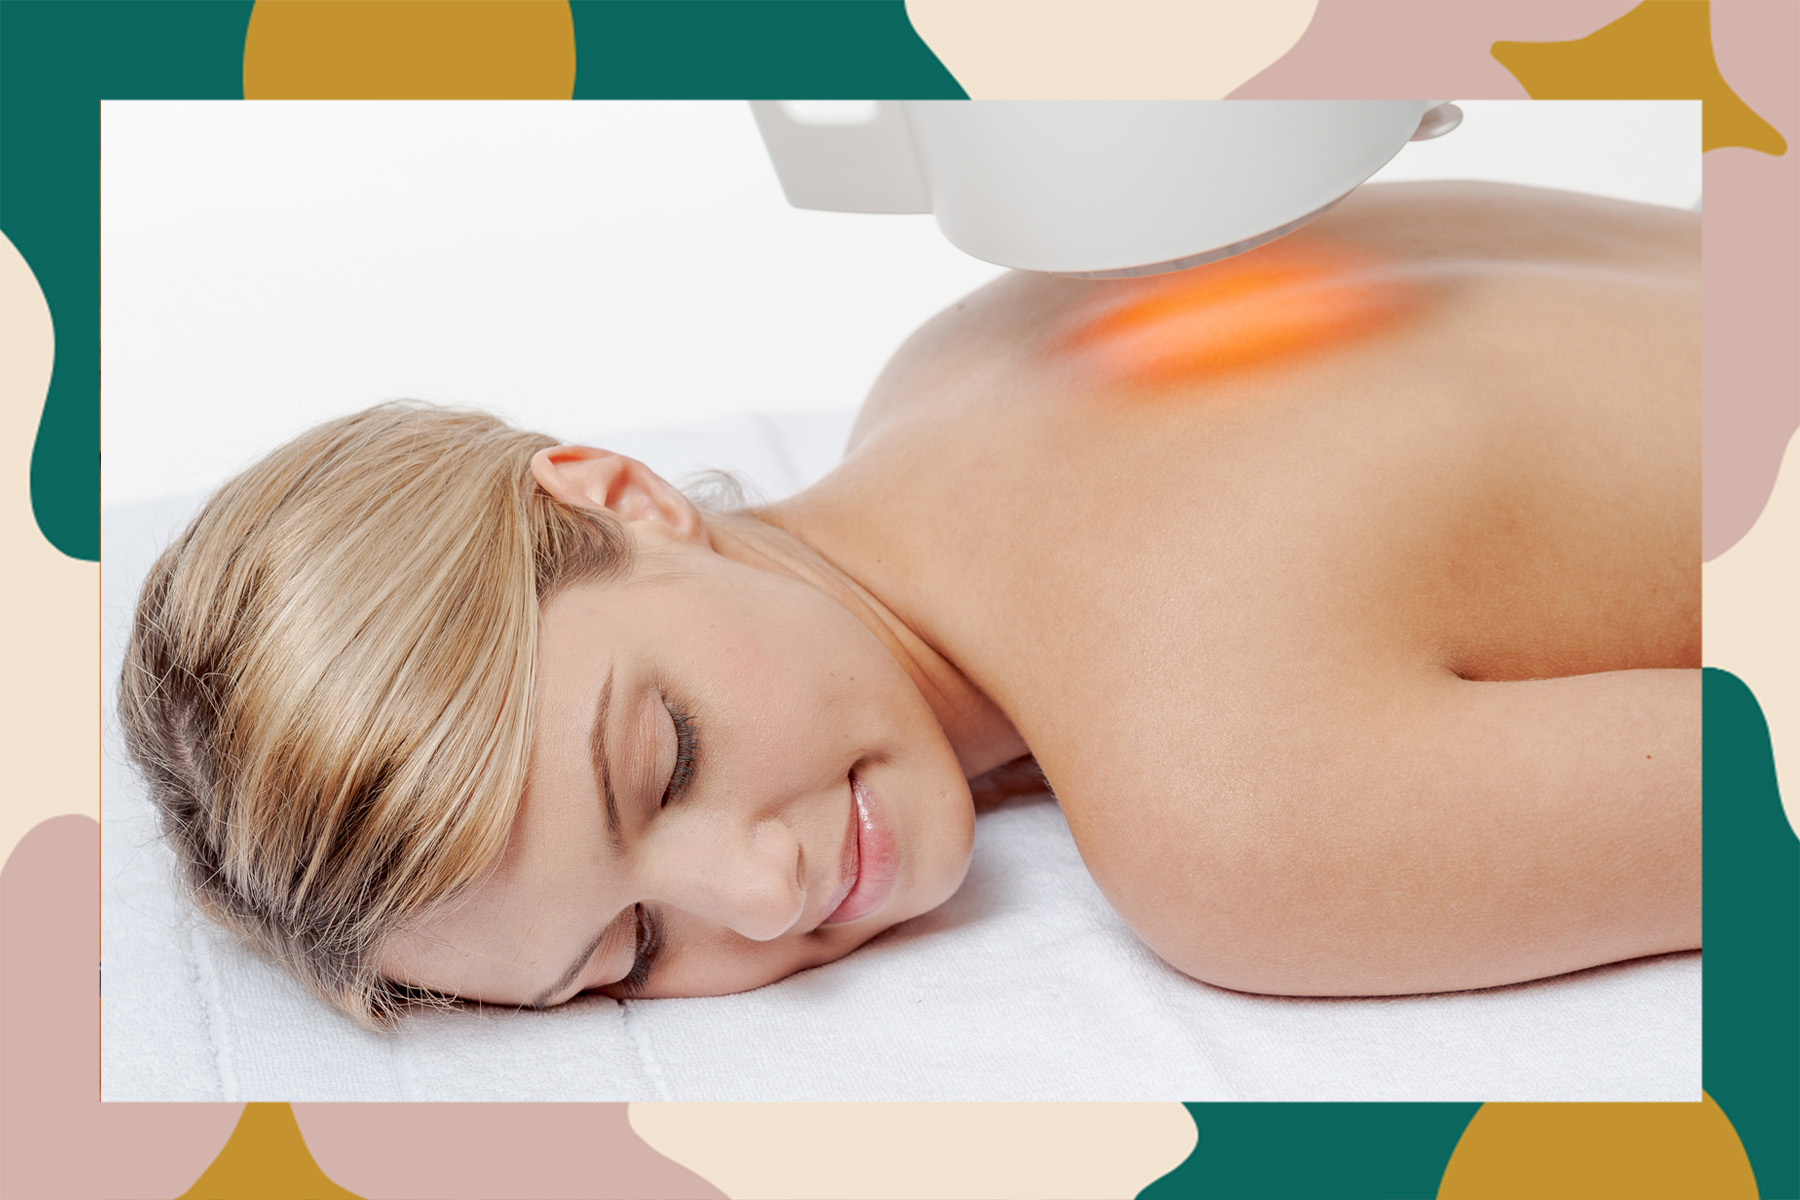 LED light therapy benefits health skin